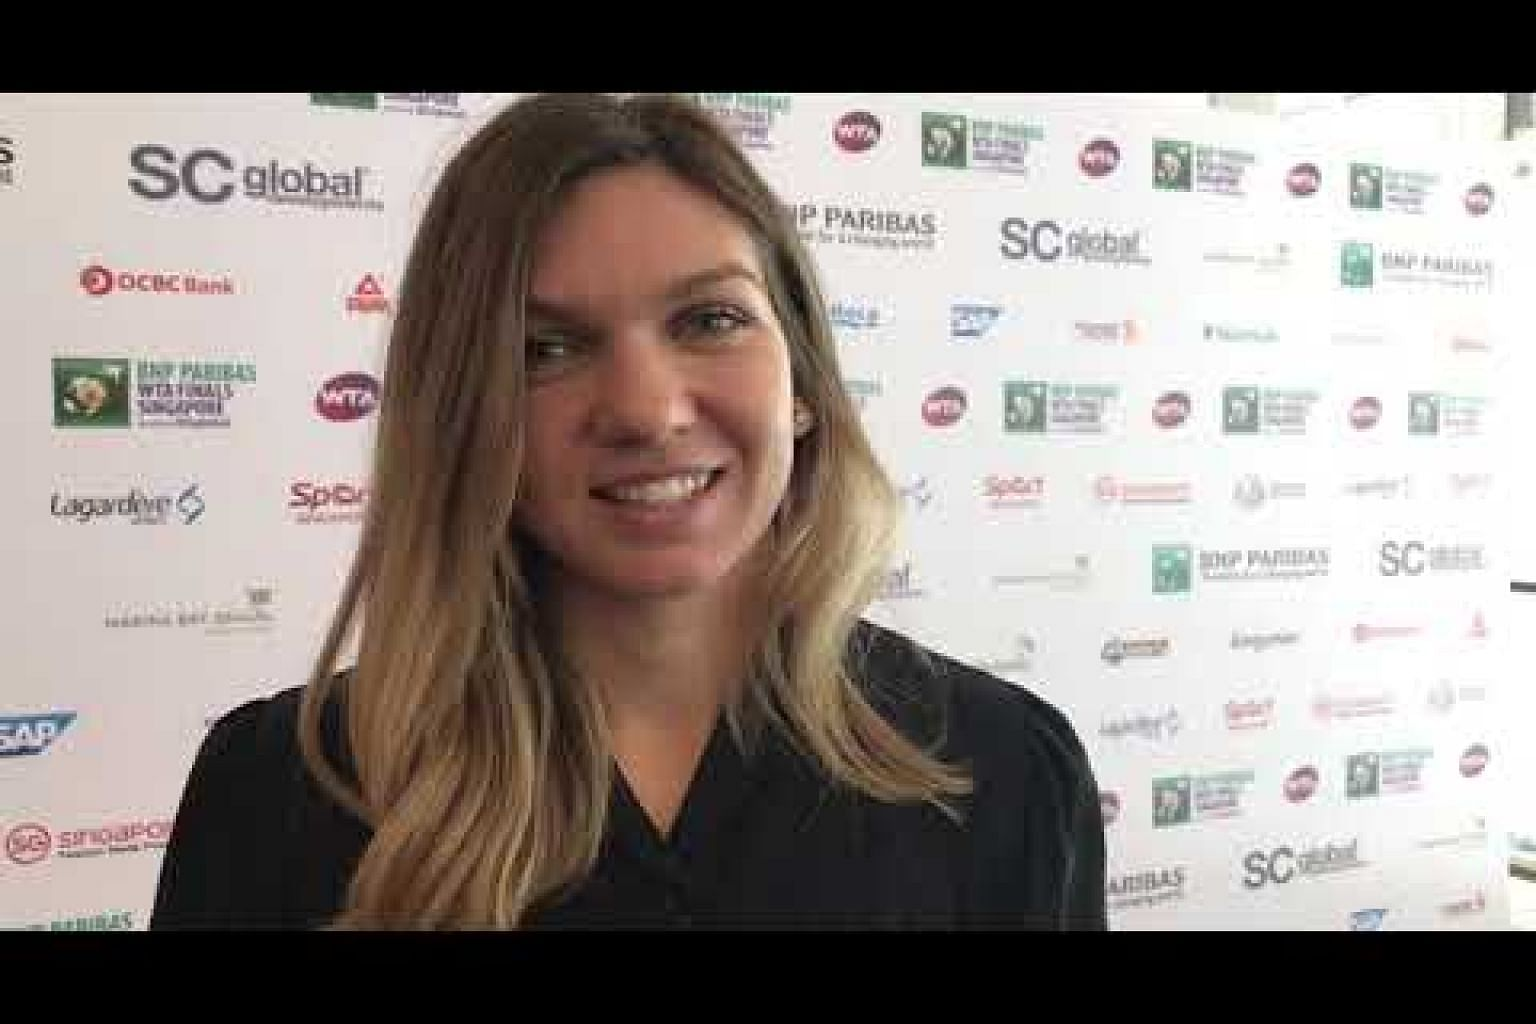 10 questions with Simona Halep